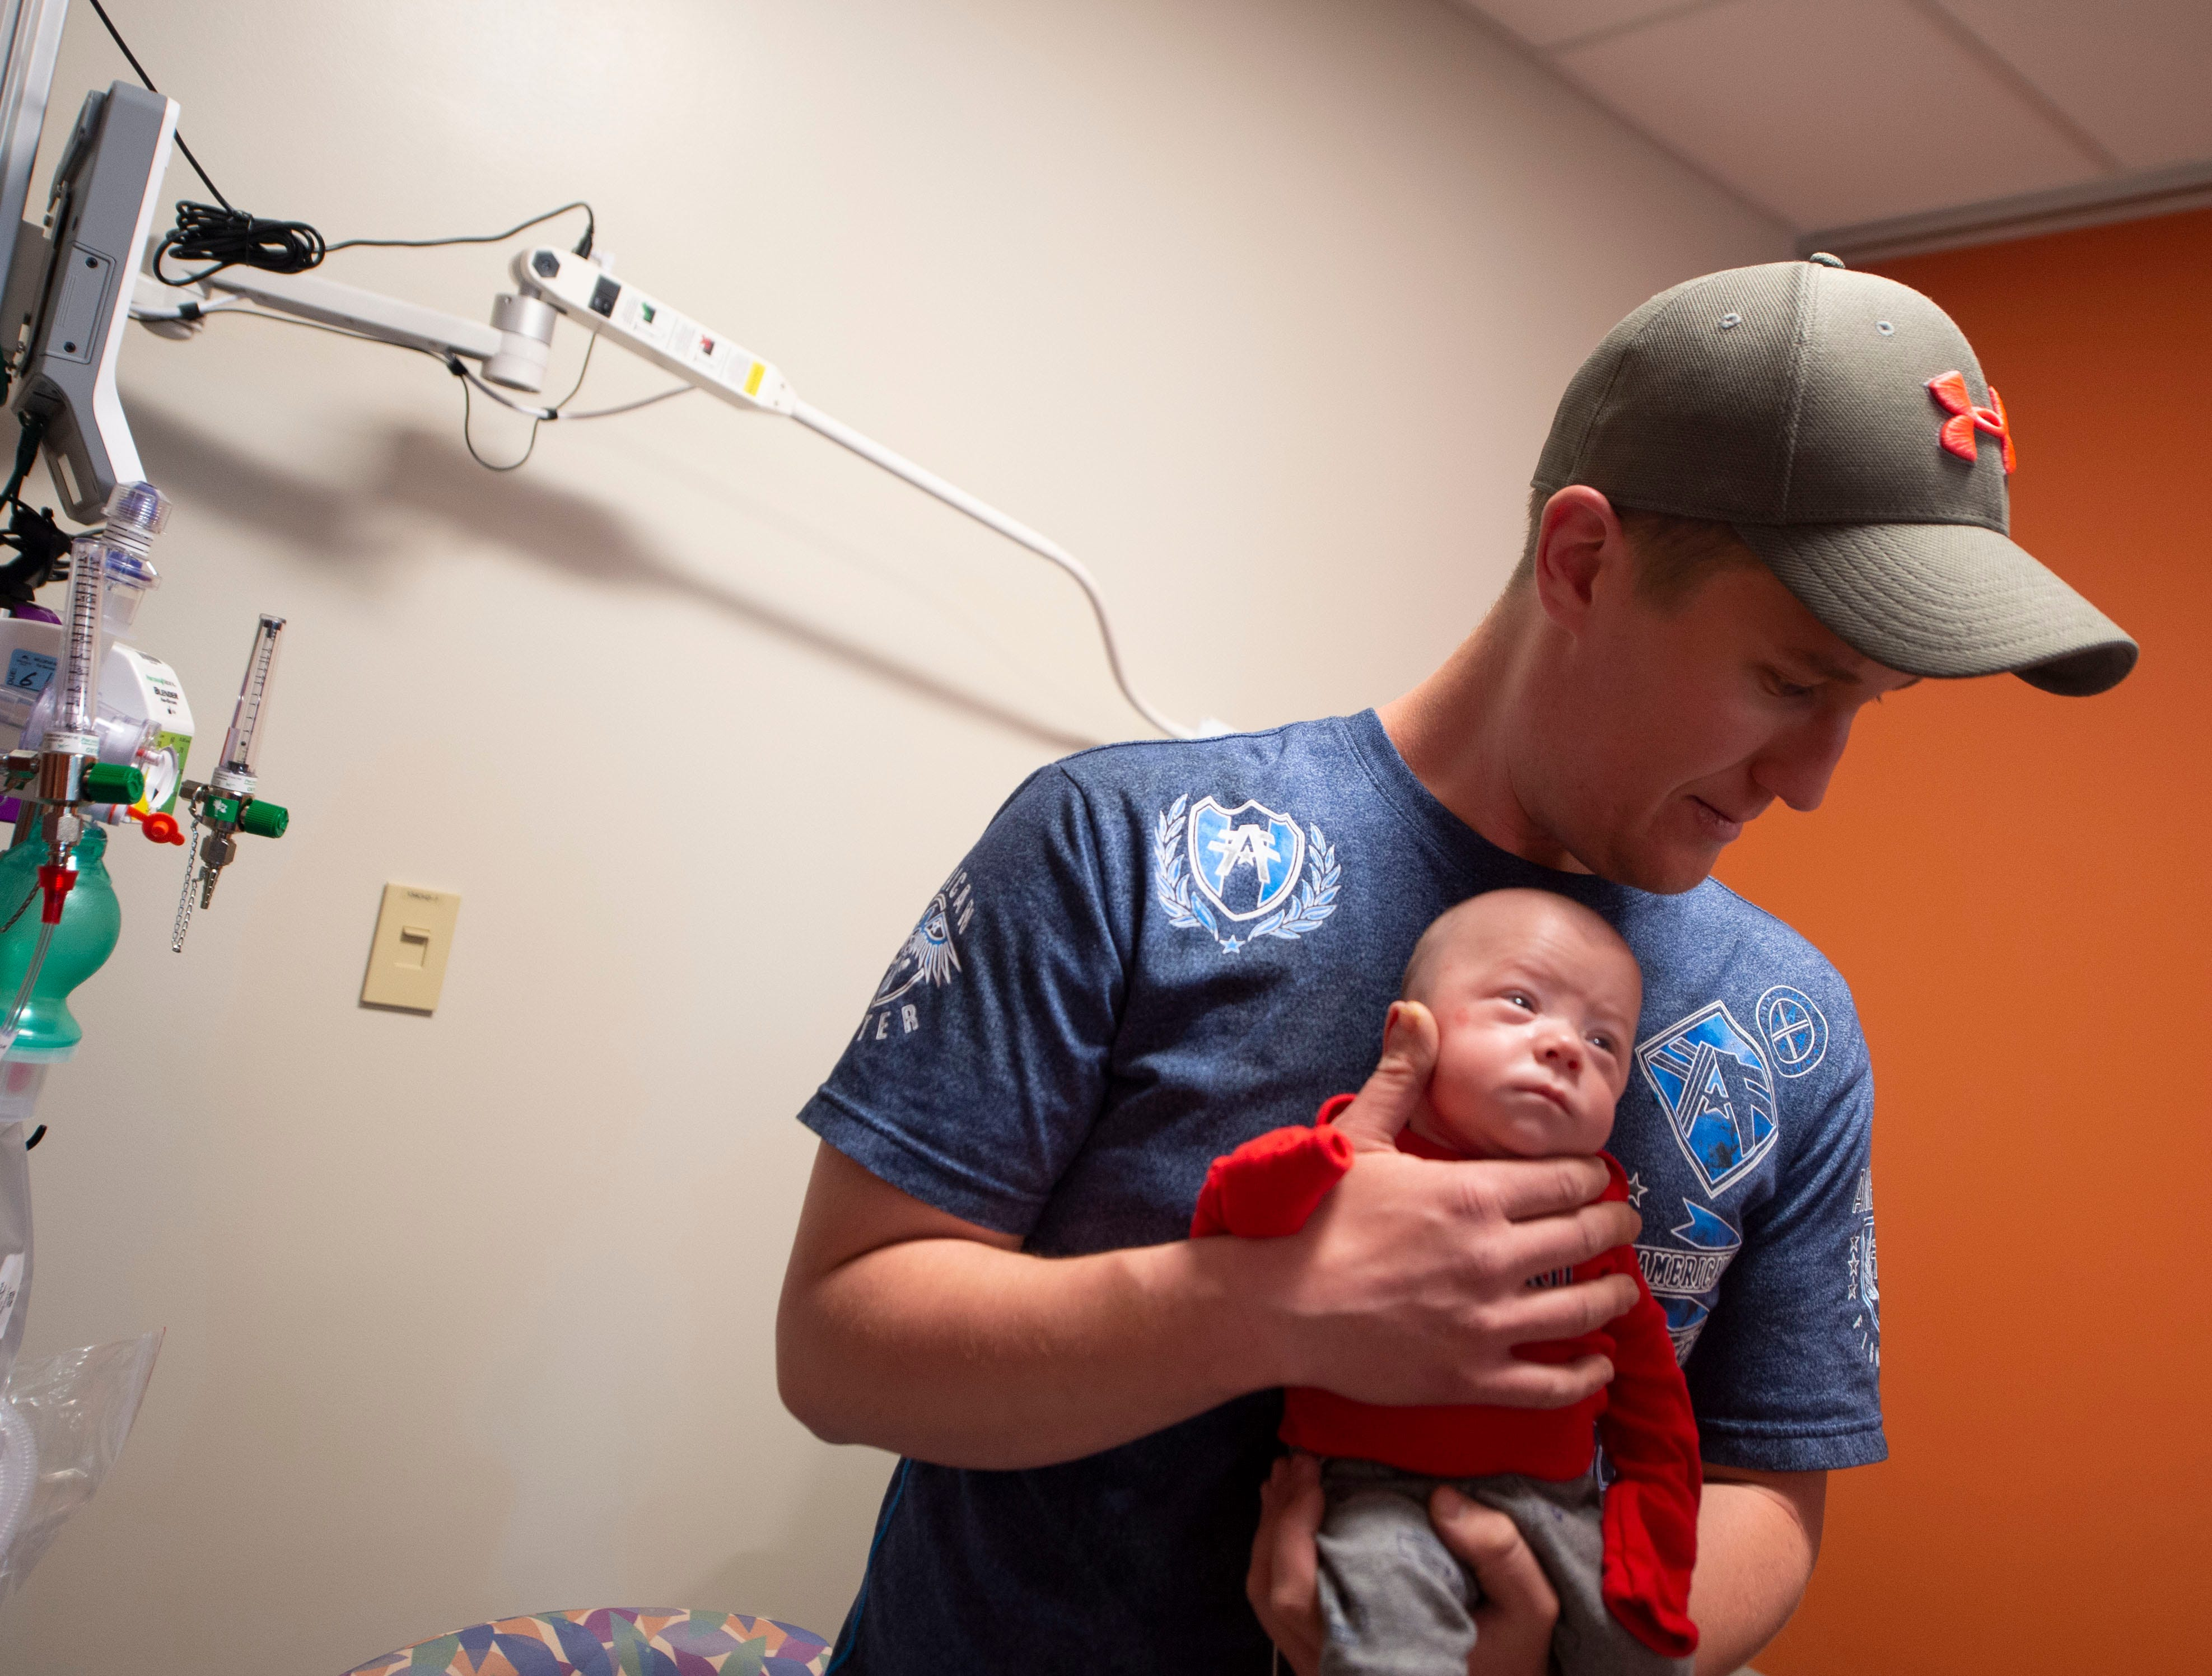 Jimmy Brown holds his son Liam McDannell inside the NICU at WellSpan York Hospital. Liam was born on New Year's Day, York County's first born child for 2019. On Tuesday, April 9 he graduated from the NICU.